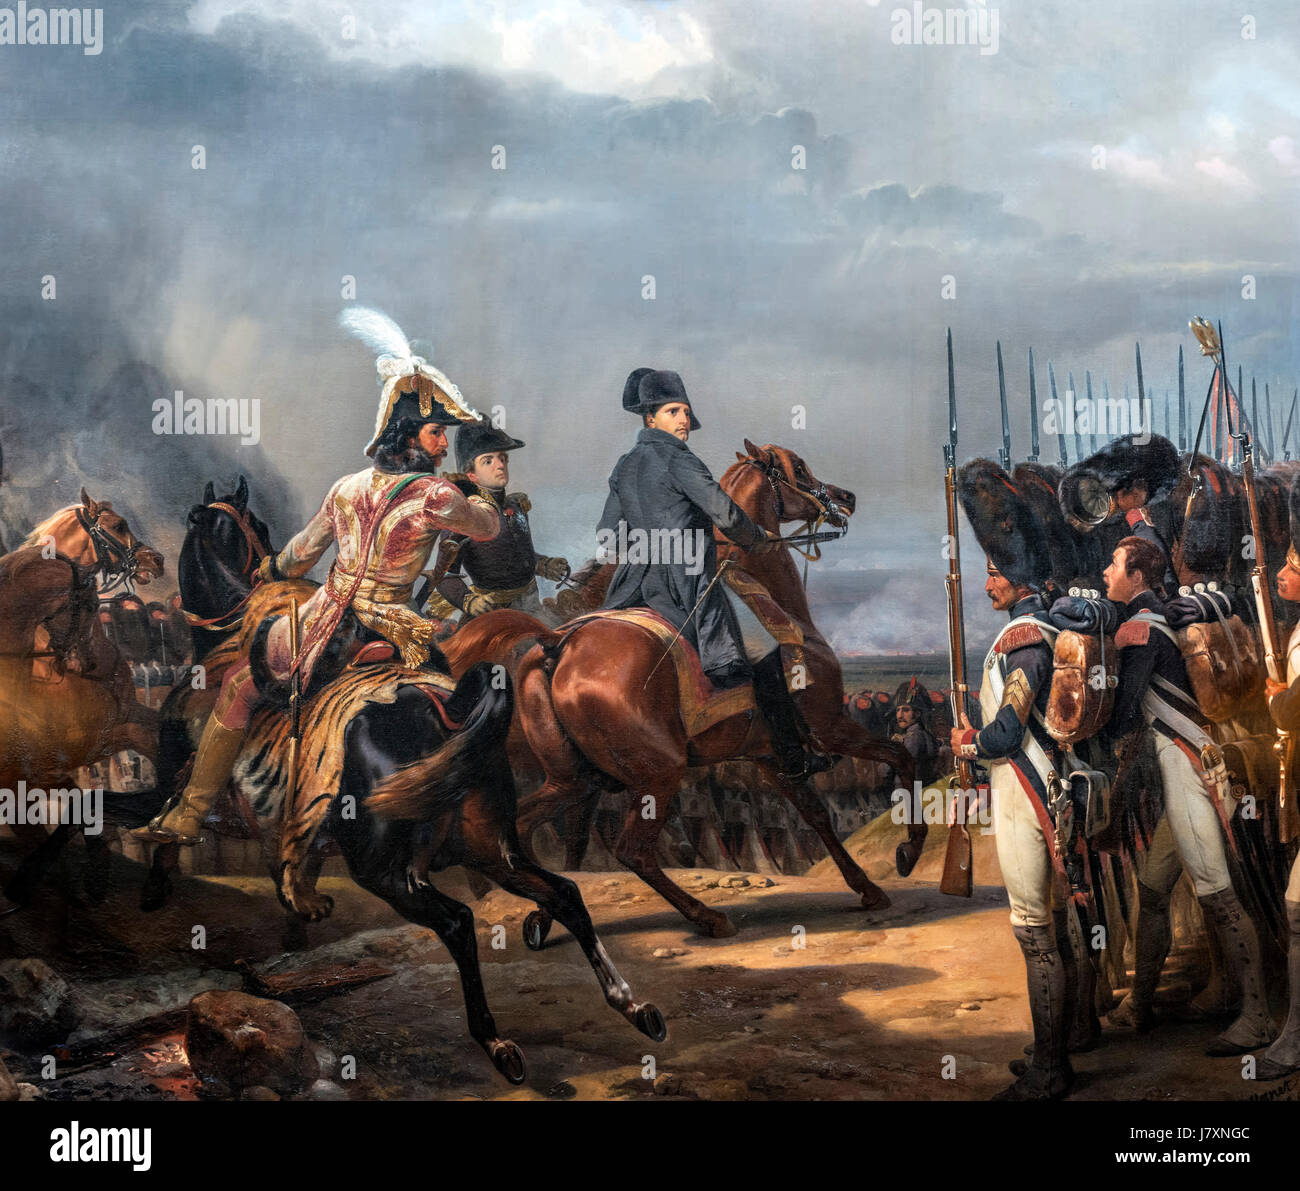 Napoleon Bonaparte Reviewing the Imperial Guard at the Battle of Jena-Auerstedt (Bataille d'Iena) on 14th October - Stock Image